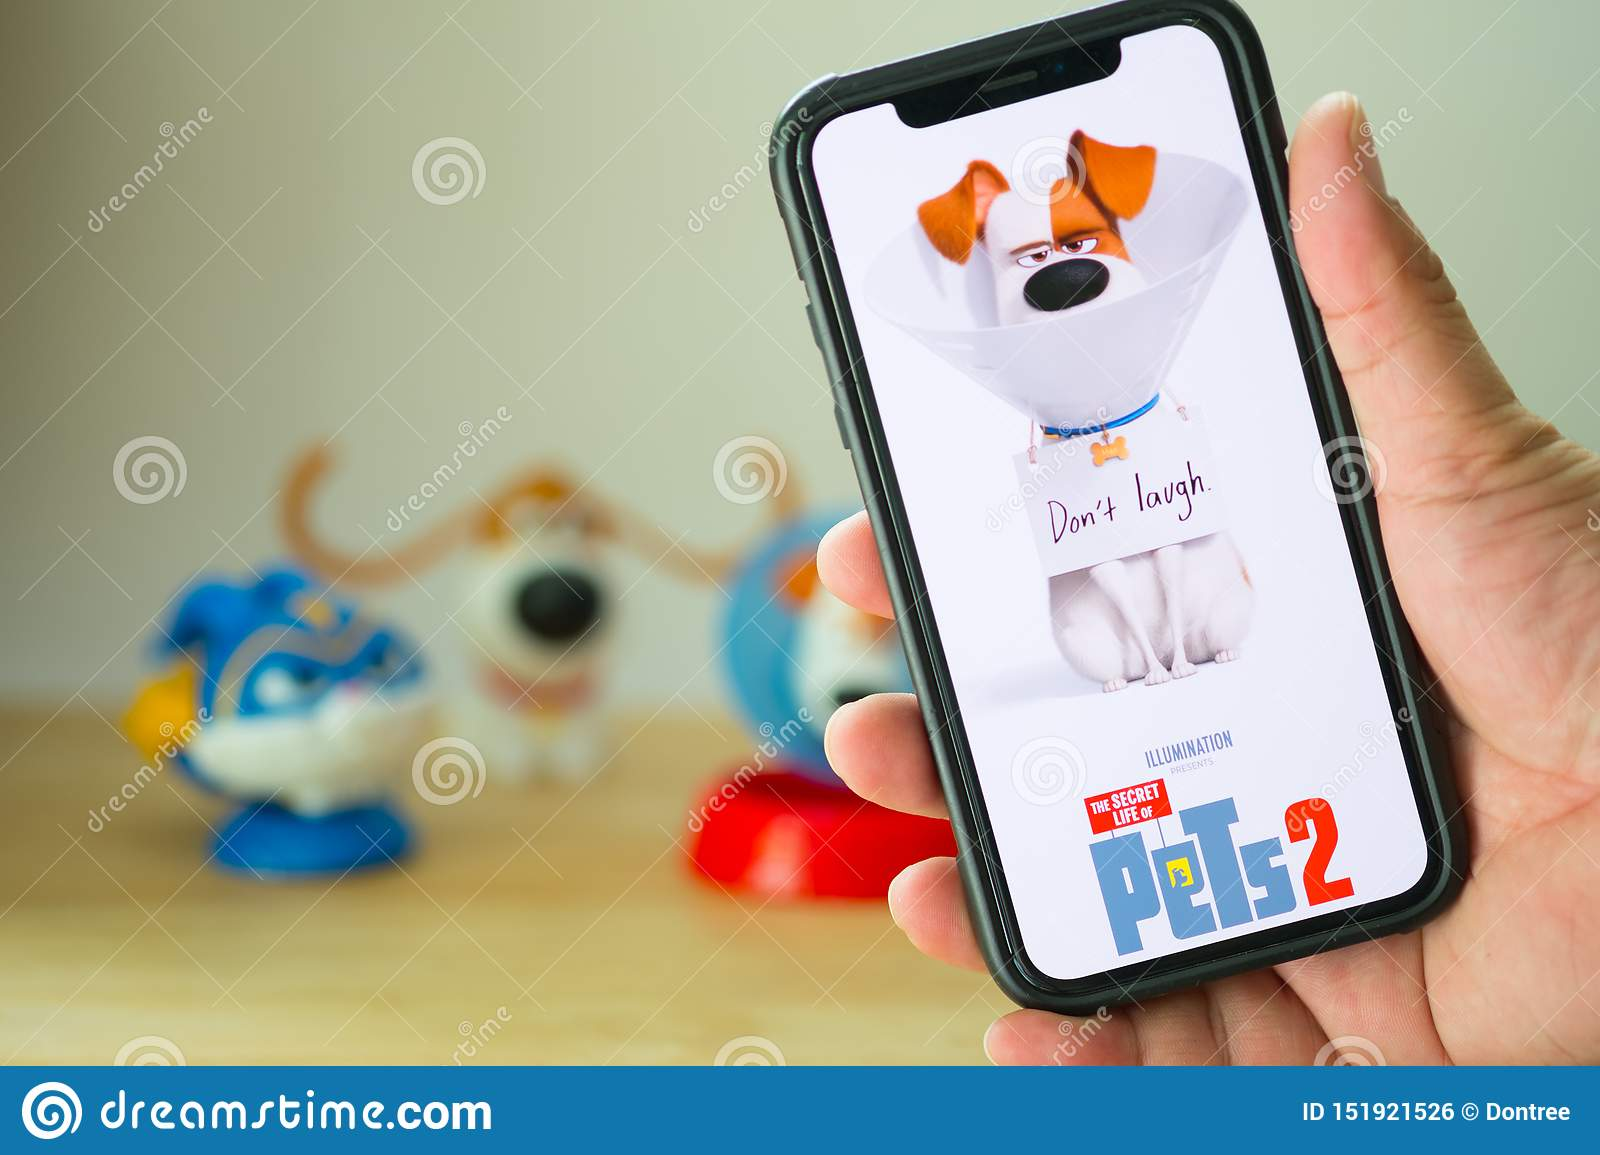 Bangkok Thailand June 2 2019 The Secret Life Of Pets 2 Movie Is An American 3d Comedy Film Produced By Illumination Entertai Editorial Photo Image Of American Director 151921526